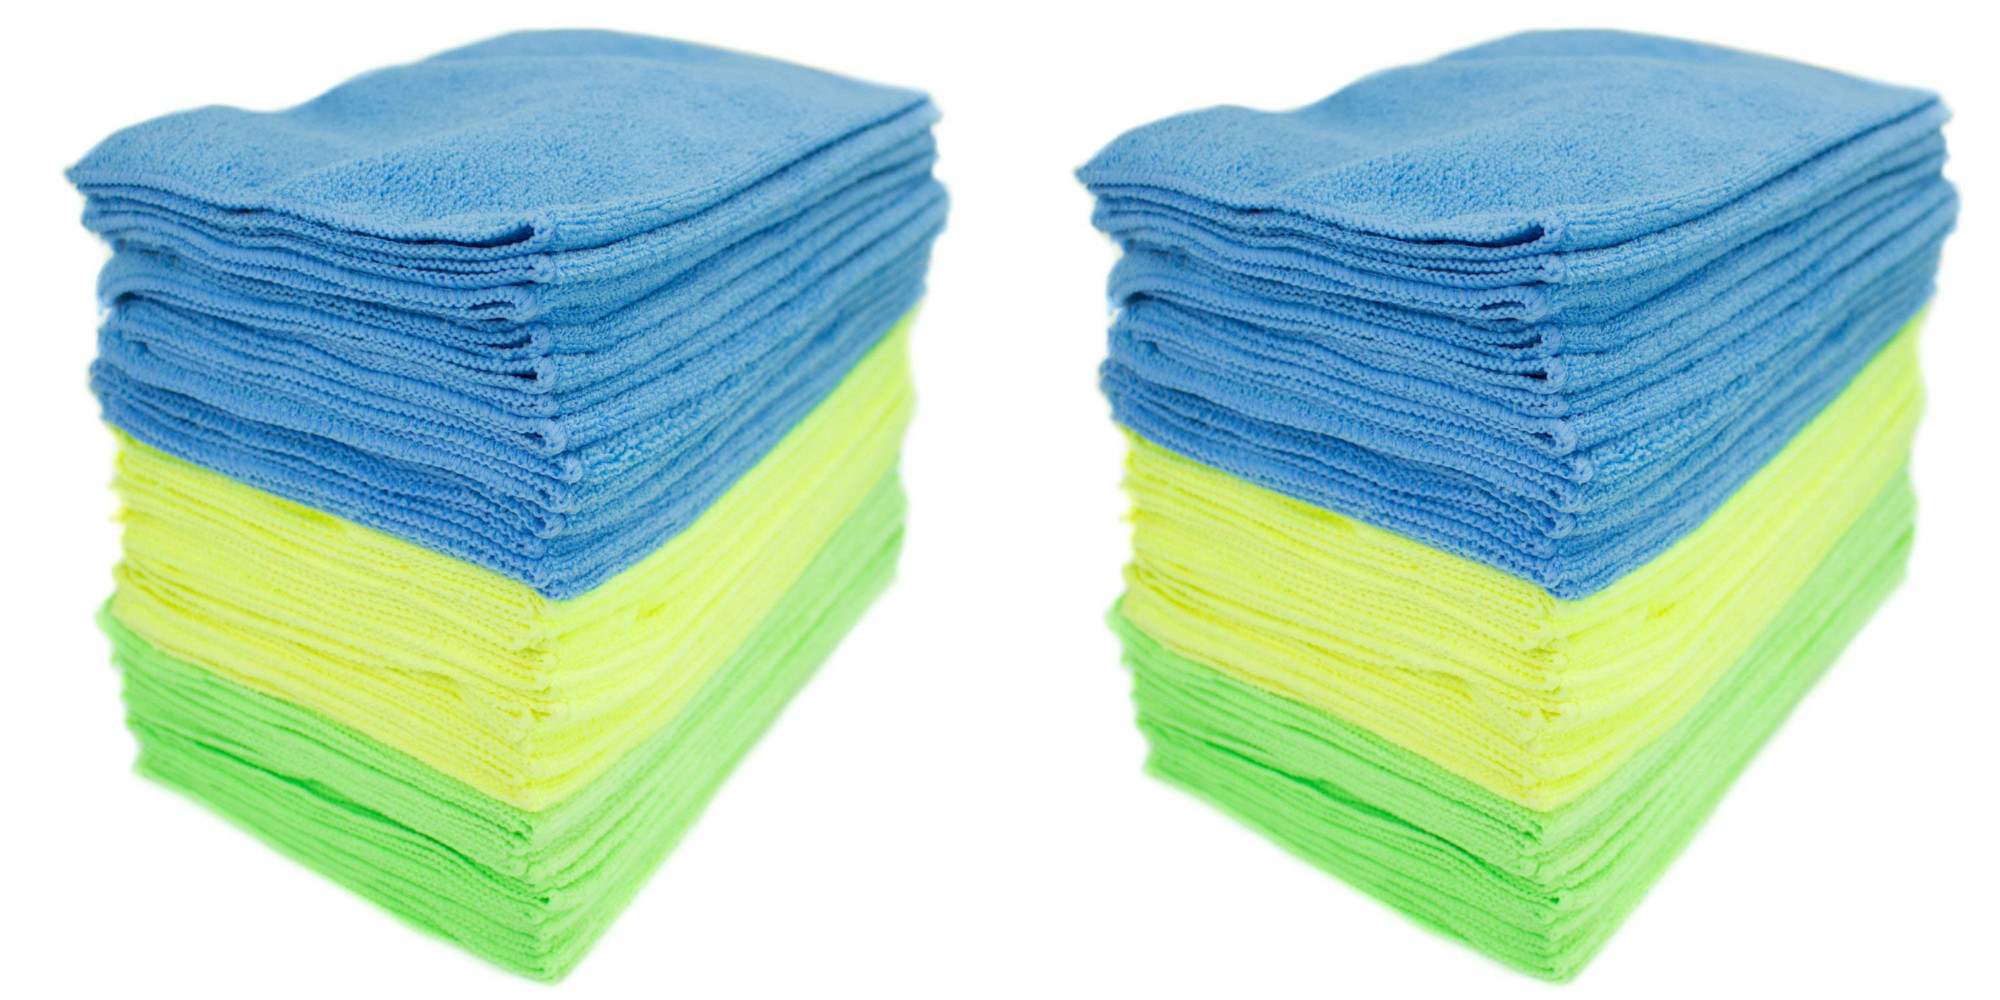 Zwipes Microfiber Cloths will keep your car shining this summer: 12-Pack from $9.50, more